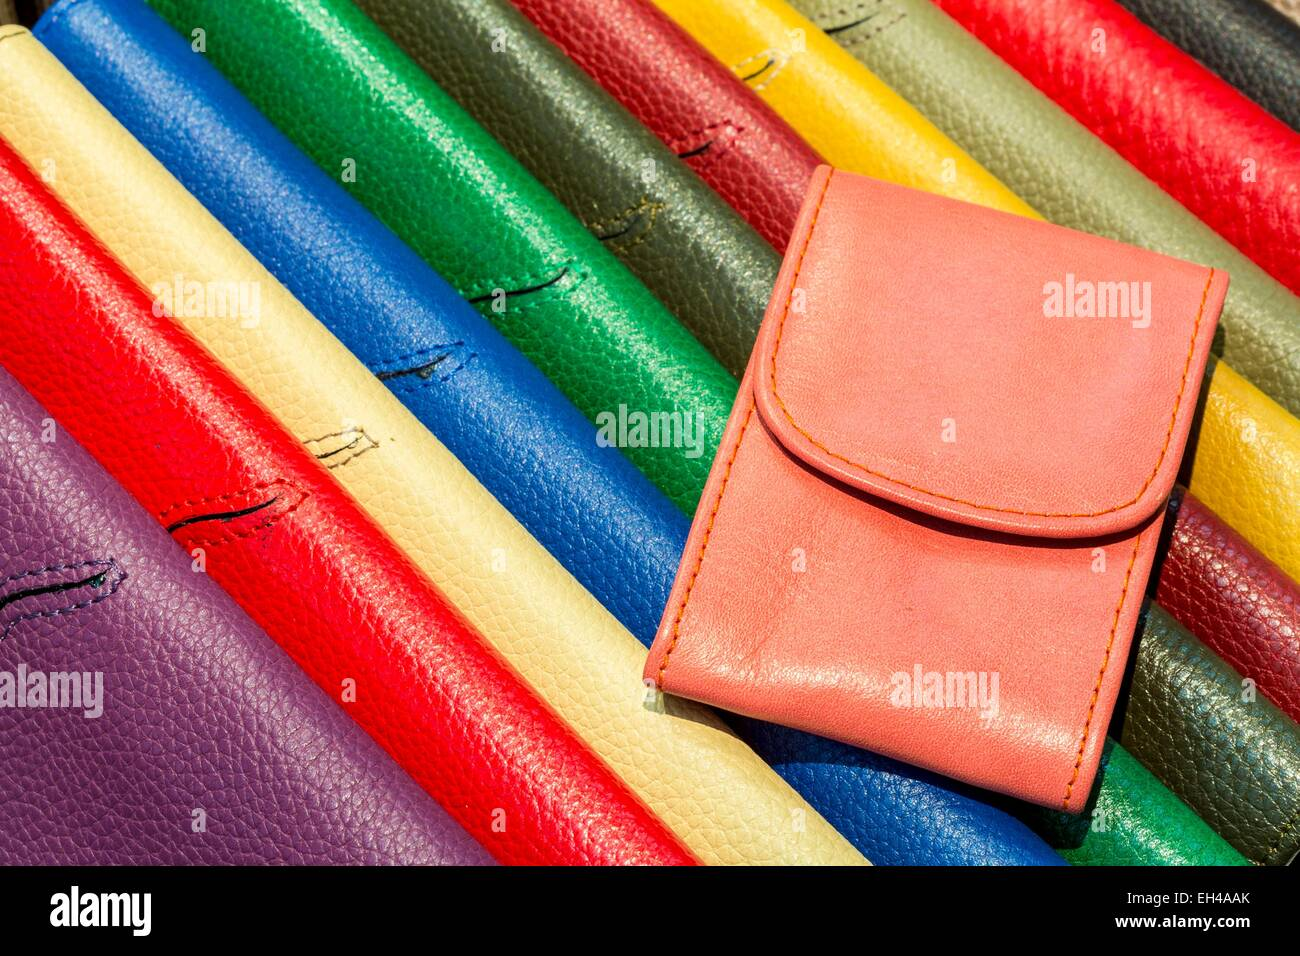 Morocco, High Atlas, Marrakech, imperial city Gueliz, brand shop Gallery Tanners, purses and leather pouch manufactured - Stock Image